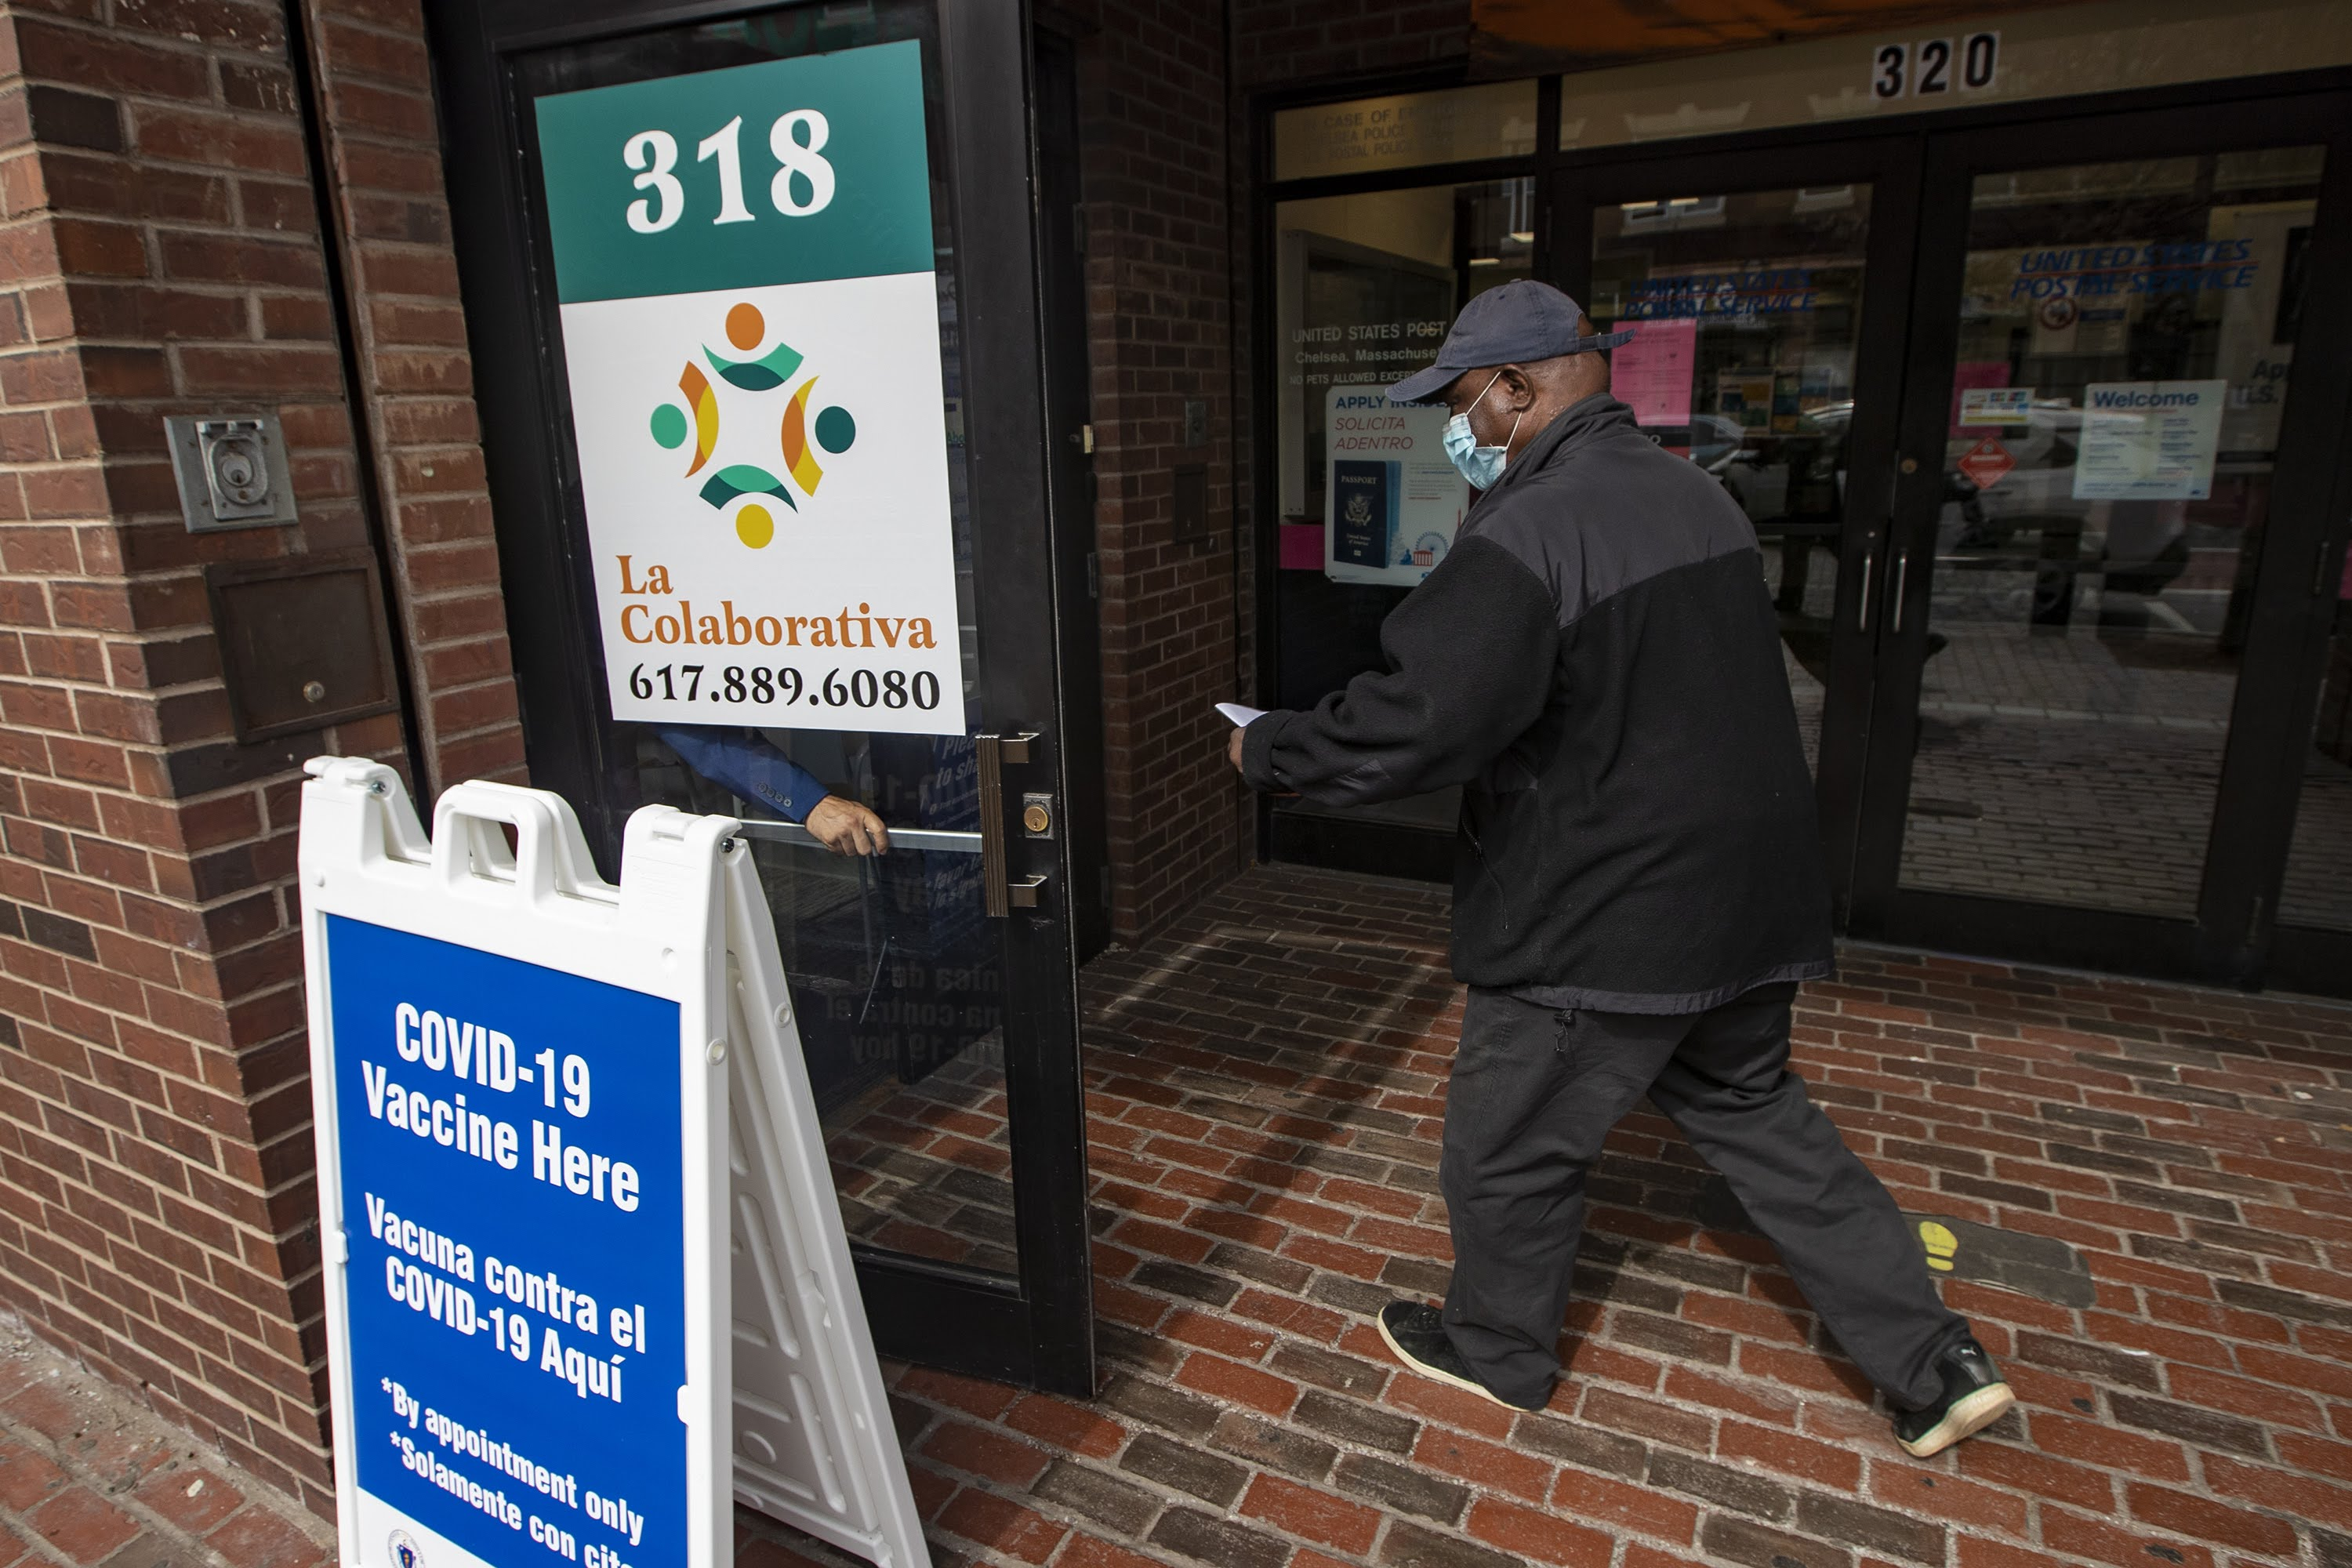 A man enters the La Colaborativa offices on Broadway which is serving as the Chelsea public COVID-19 vaccination site. (Jesse Costa/WBUR)